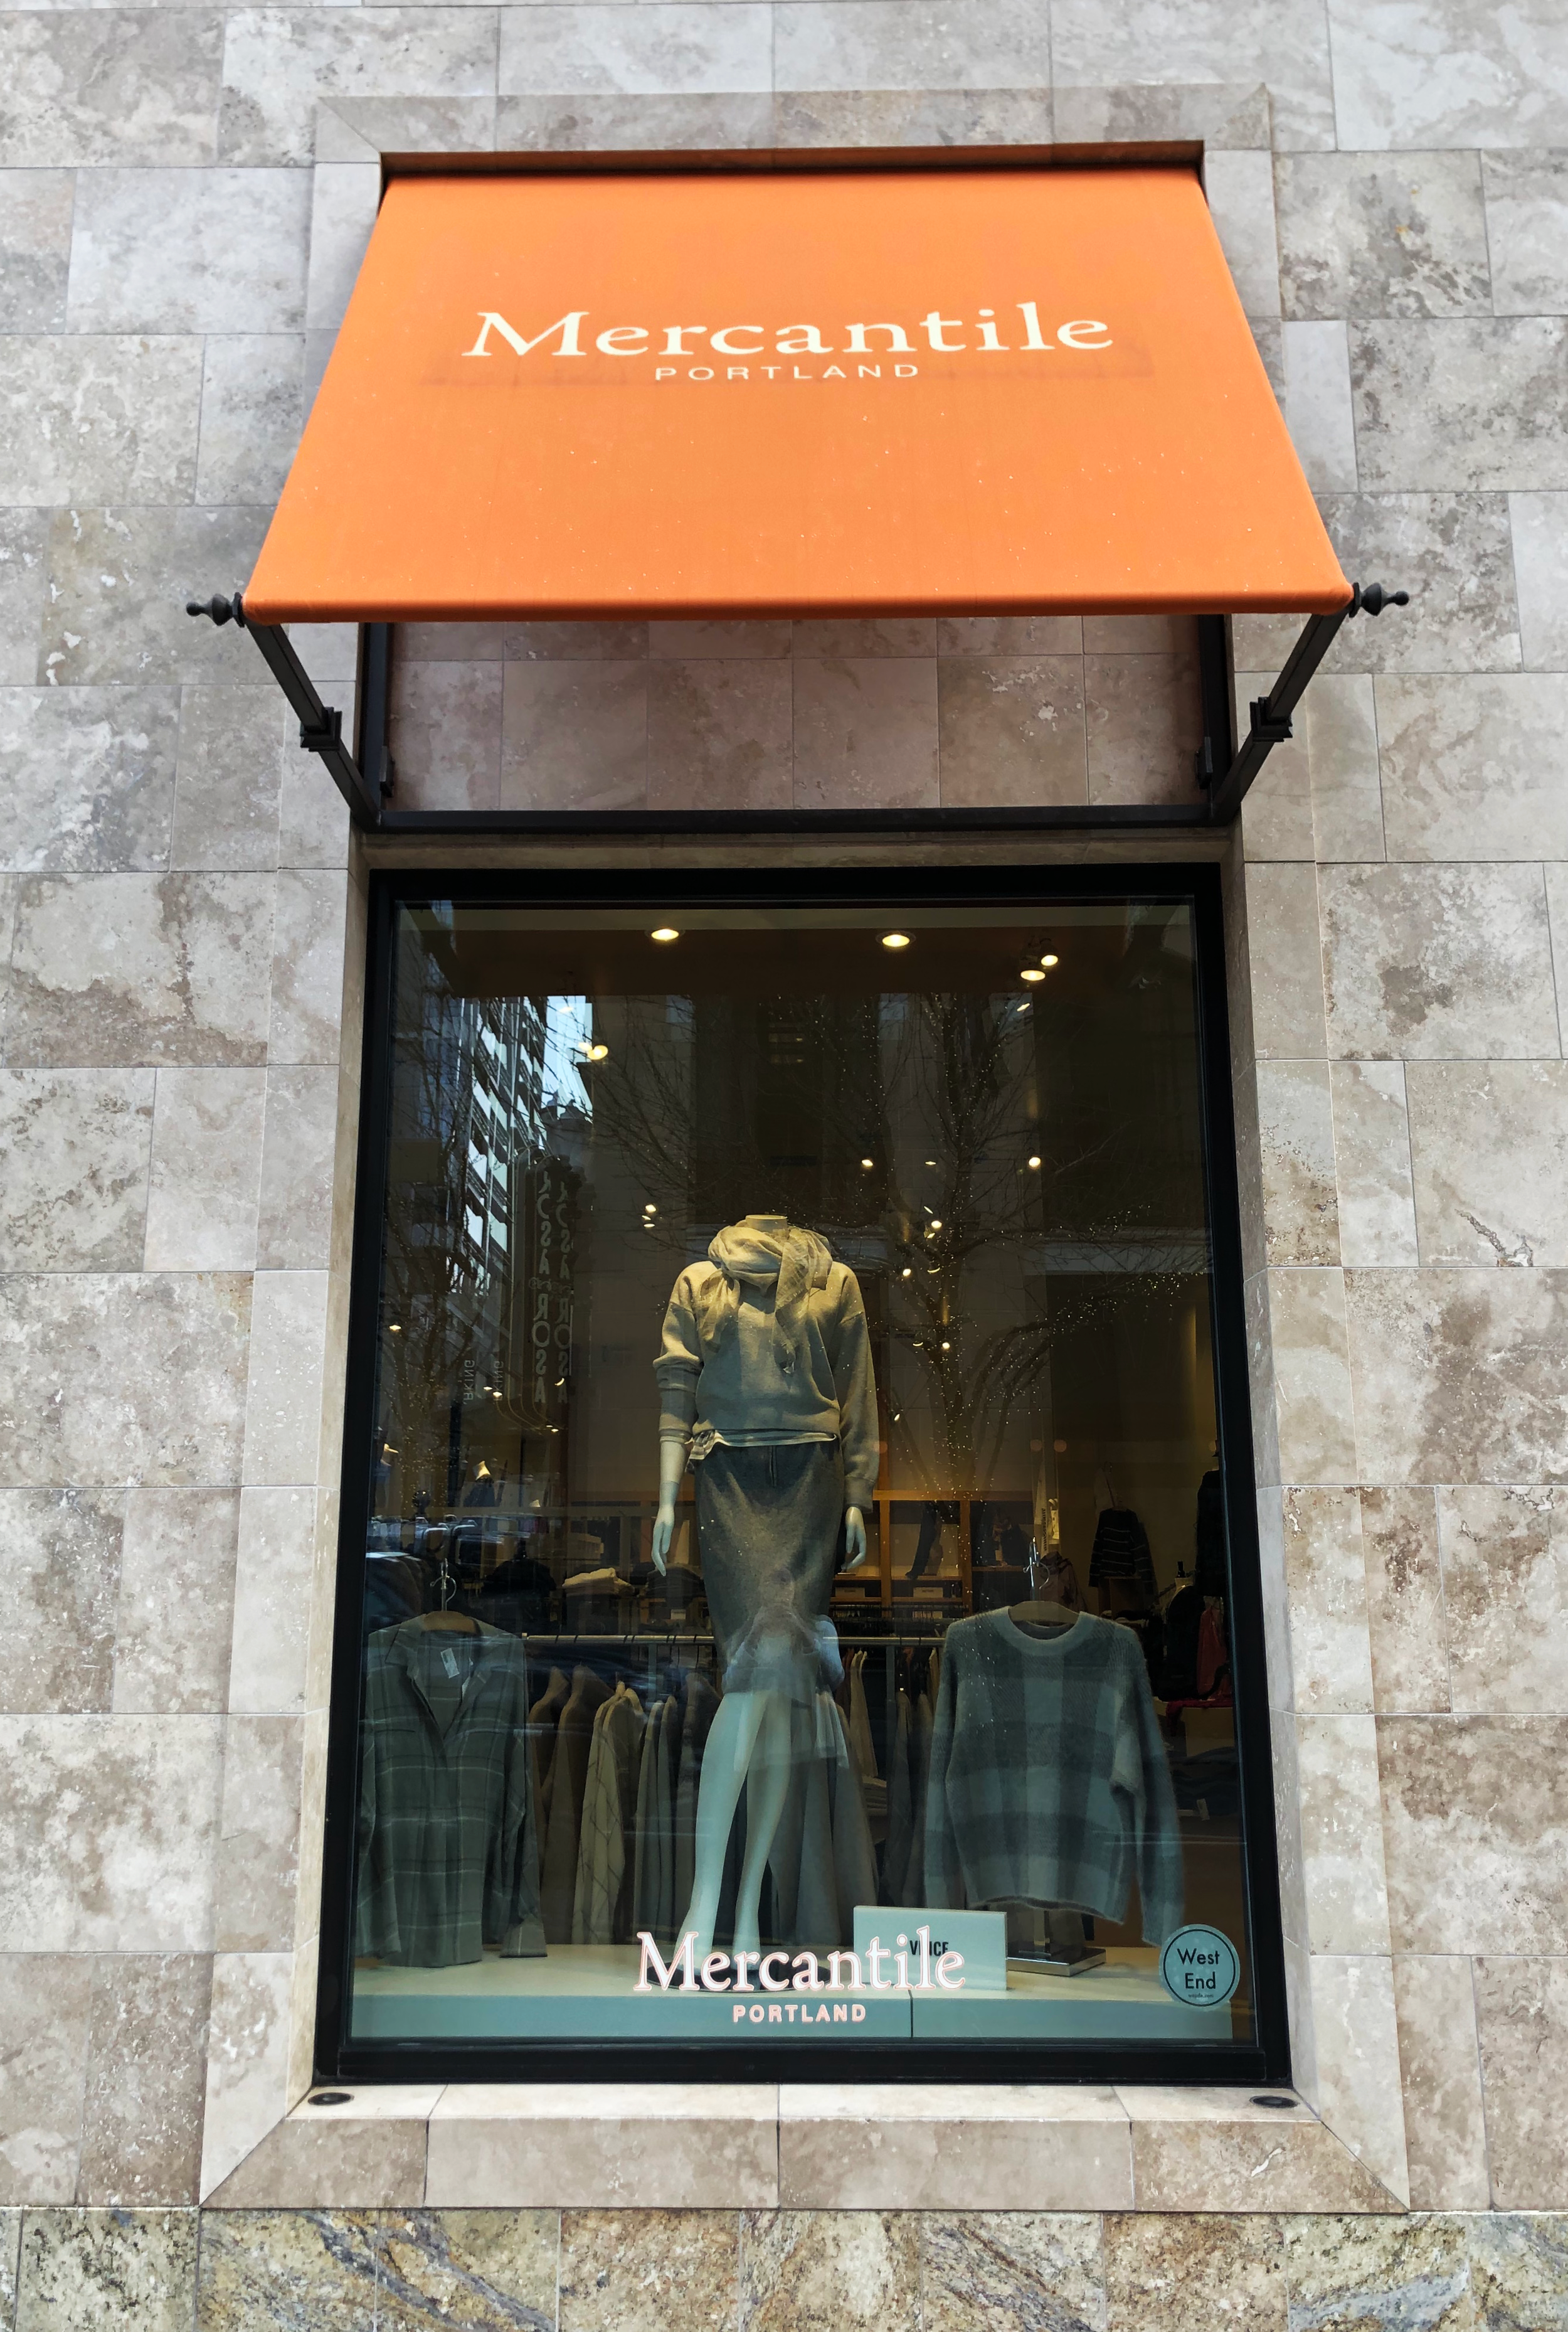 Mercantile-window-ABOUT.png